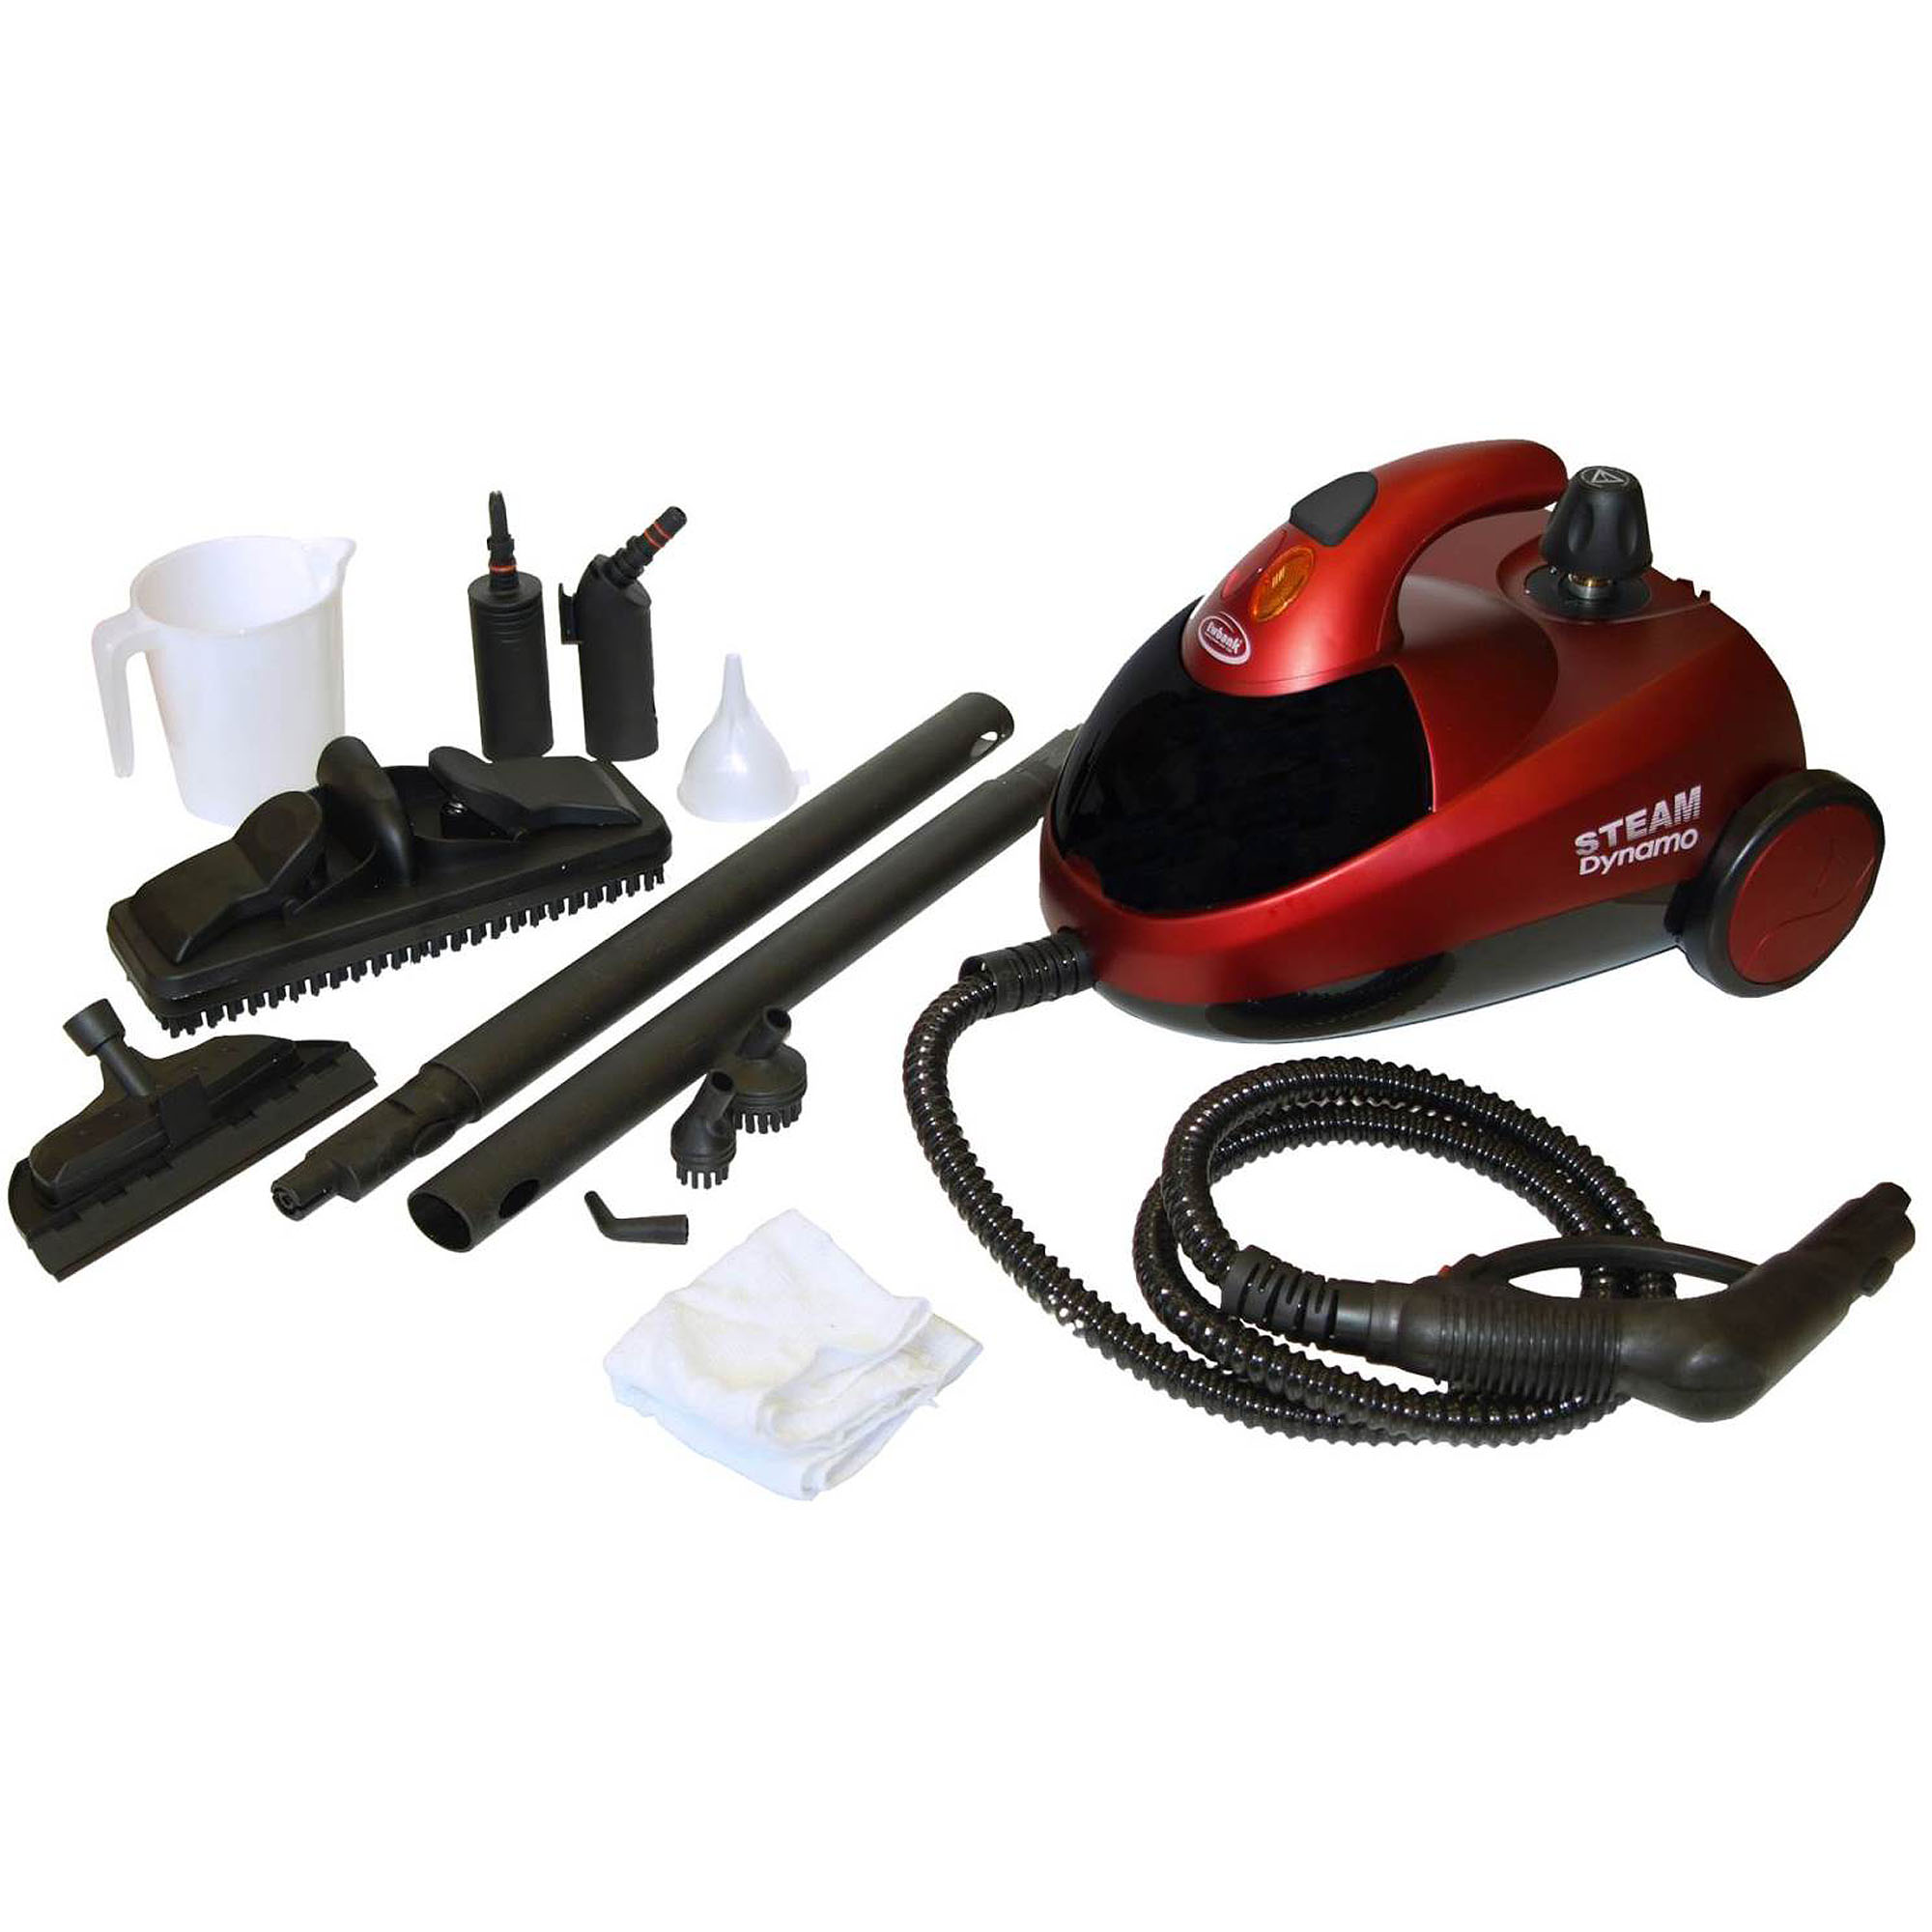 Ewbank SC1000 Steam Dynamo Pressurized Steam Cleaner, Red